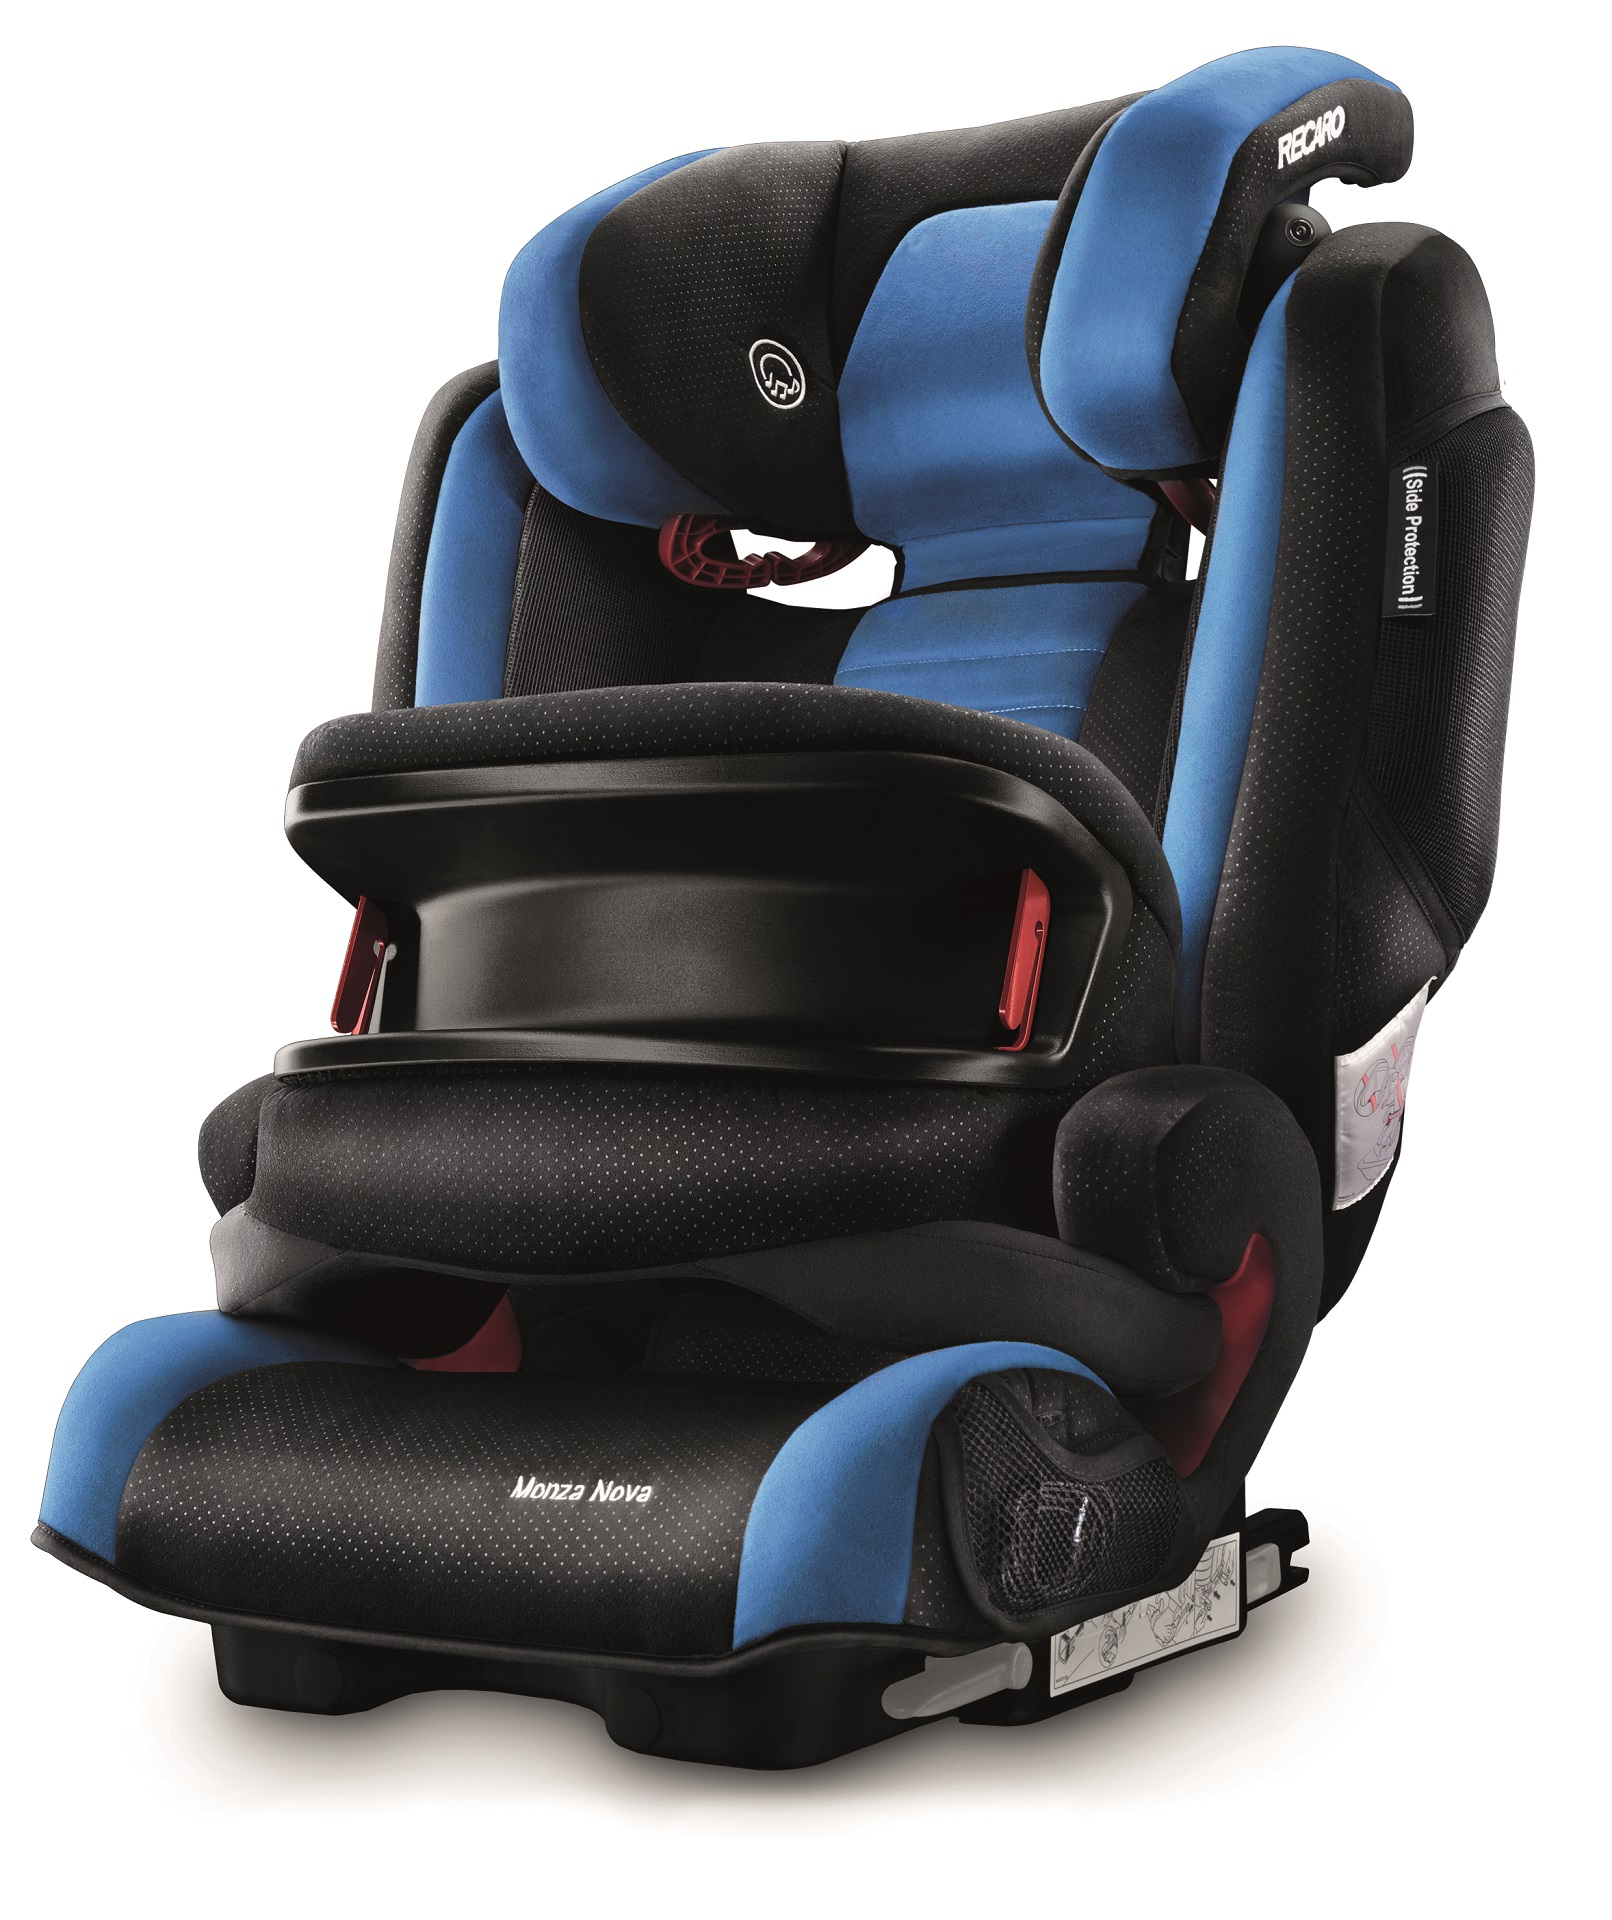 recaro child car seat monza nova is seatfix buy at kidsroom car seats isofix child car seats. Black Bedroom Furniture Sets. Home Design Ideas